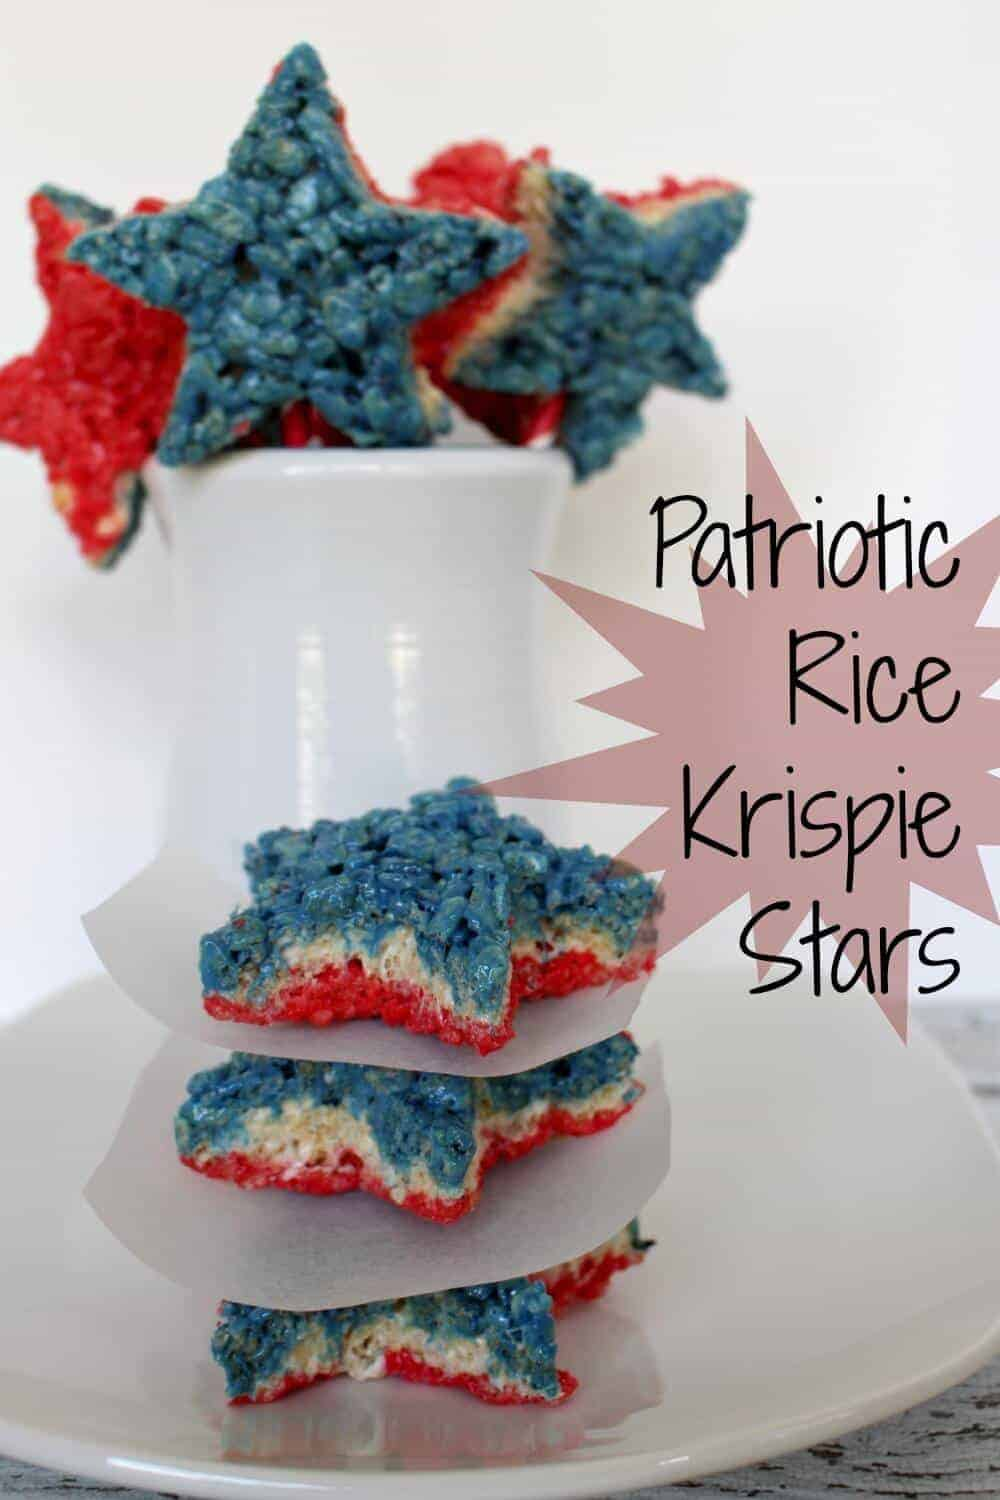 Patriotic Rice Krispie Stars by Princess Pinky Girl